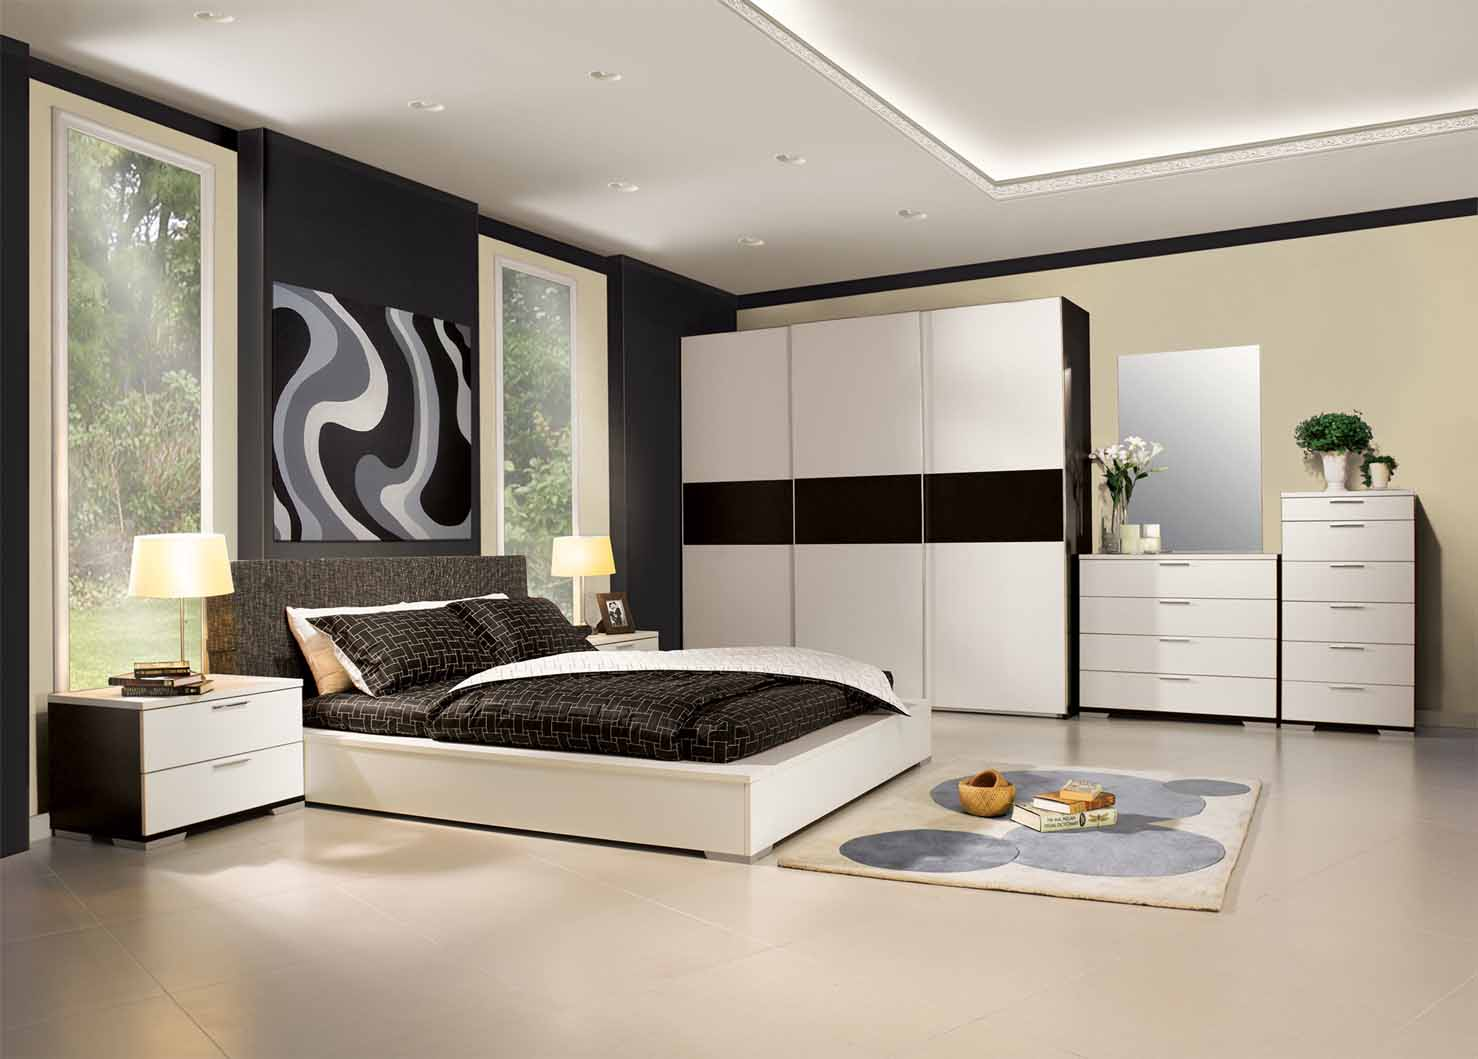 Home interior designs modern bedroom ideas - Interior bedroom design ...